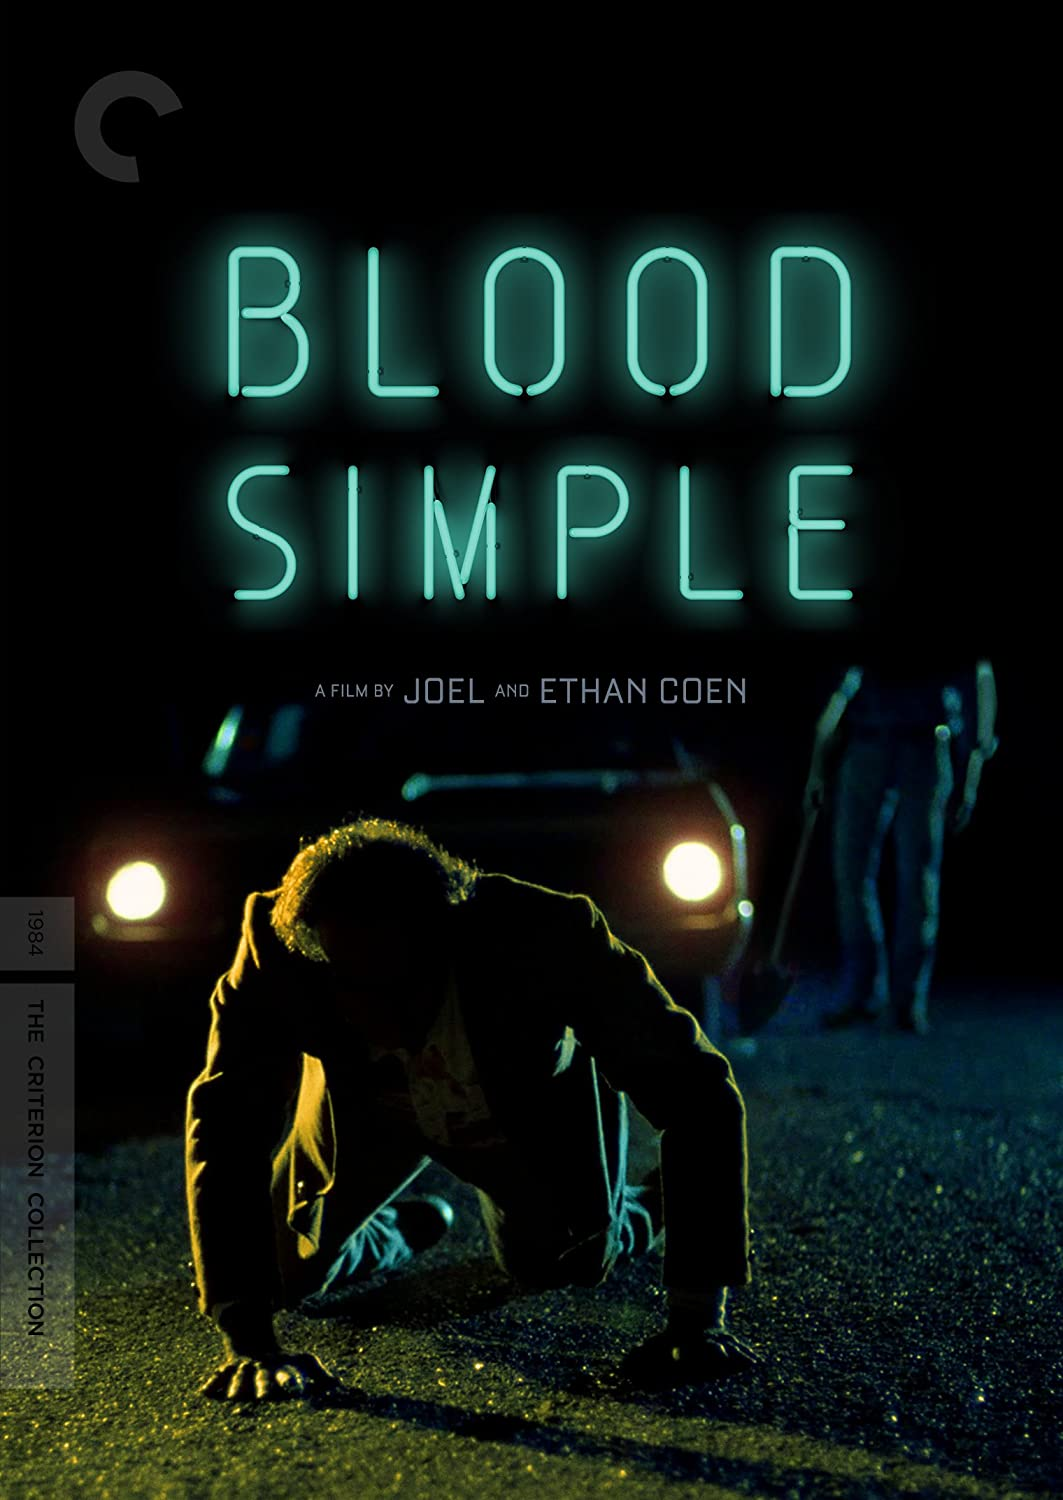 Image result for blood simple criterion poster